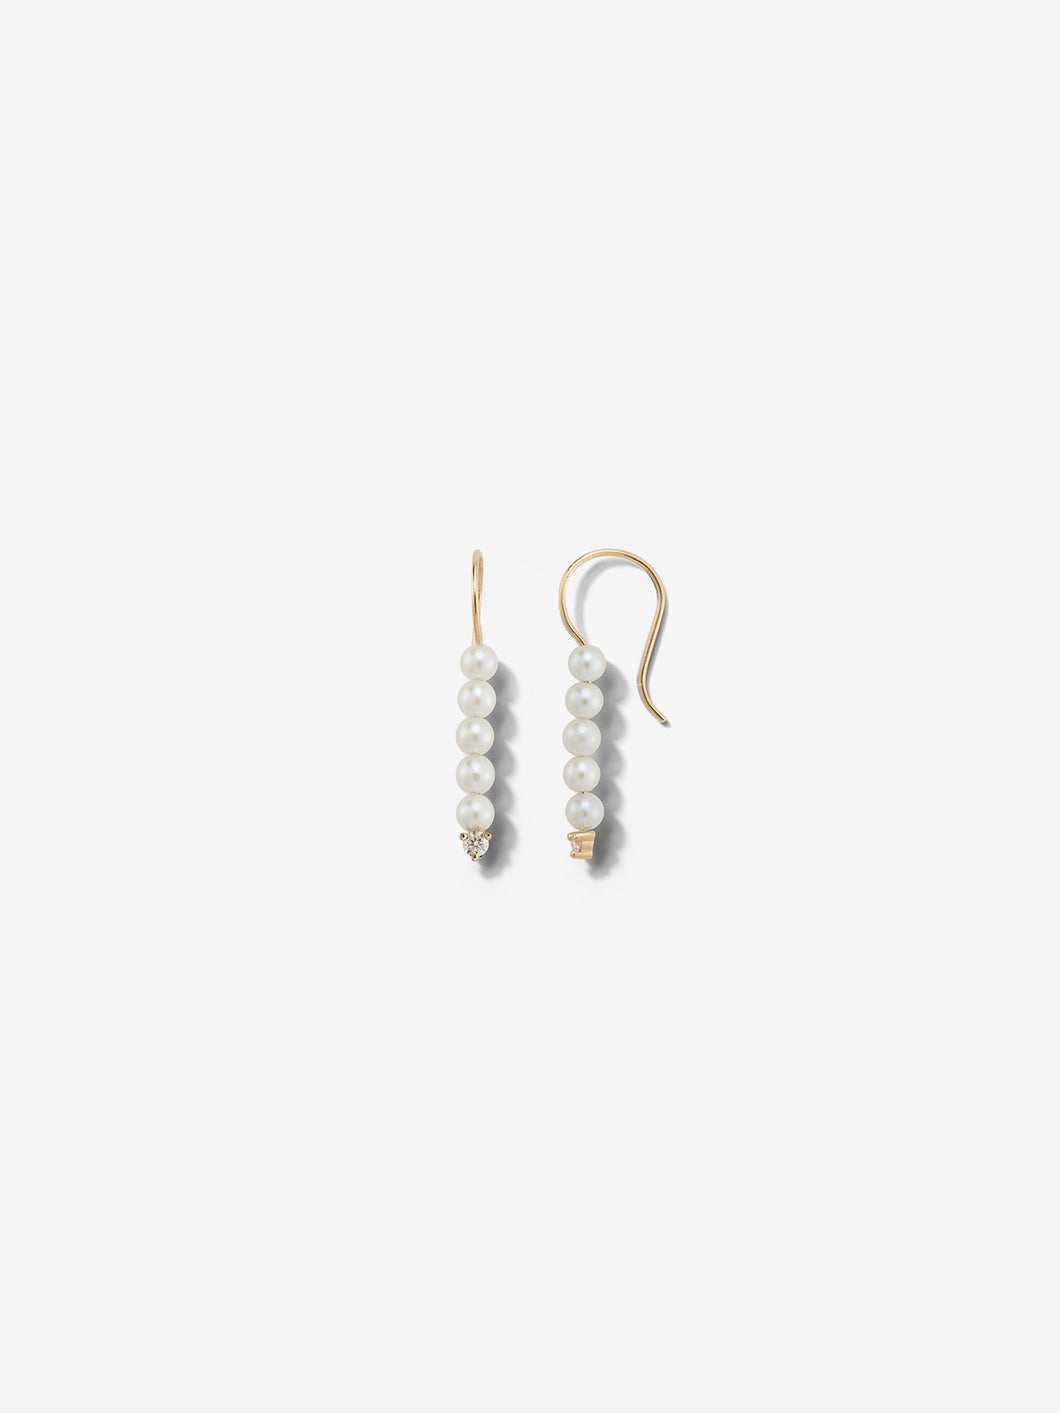 Sea of Beauty Collection.  Small Pearl and Diamond Bar Earrings SBE254